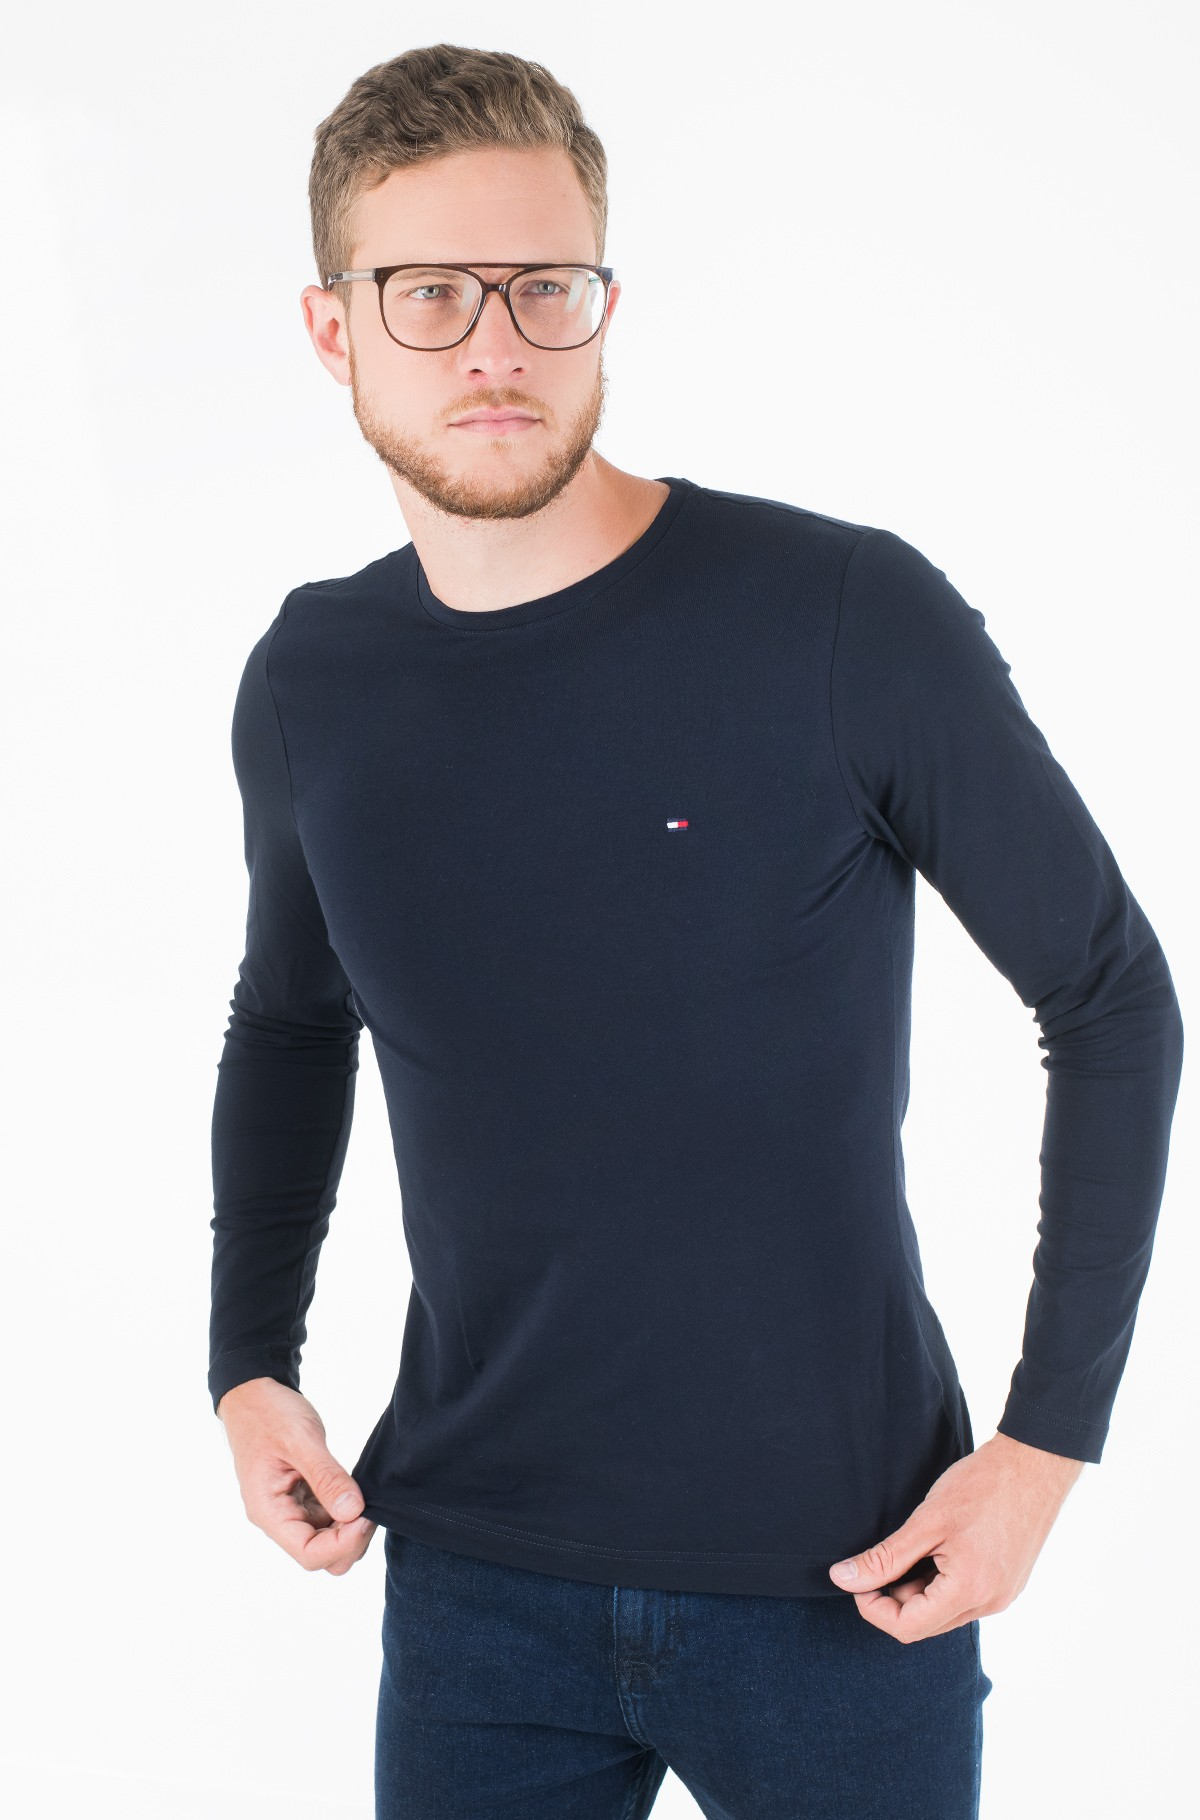 Pikkade käistega t-särk STRETCH SLIM FIT LONG SLEEVE TEE-full-1